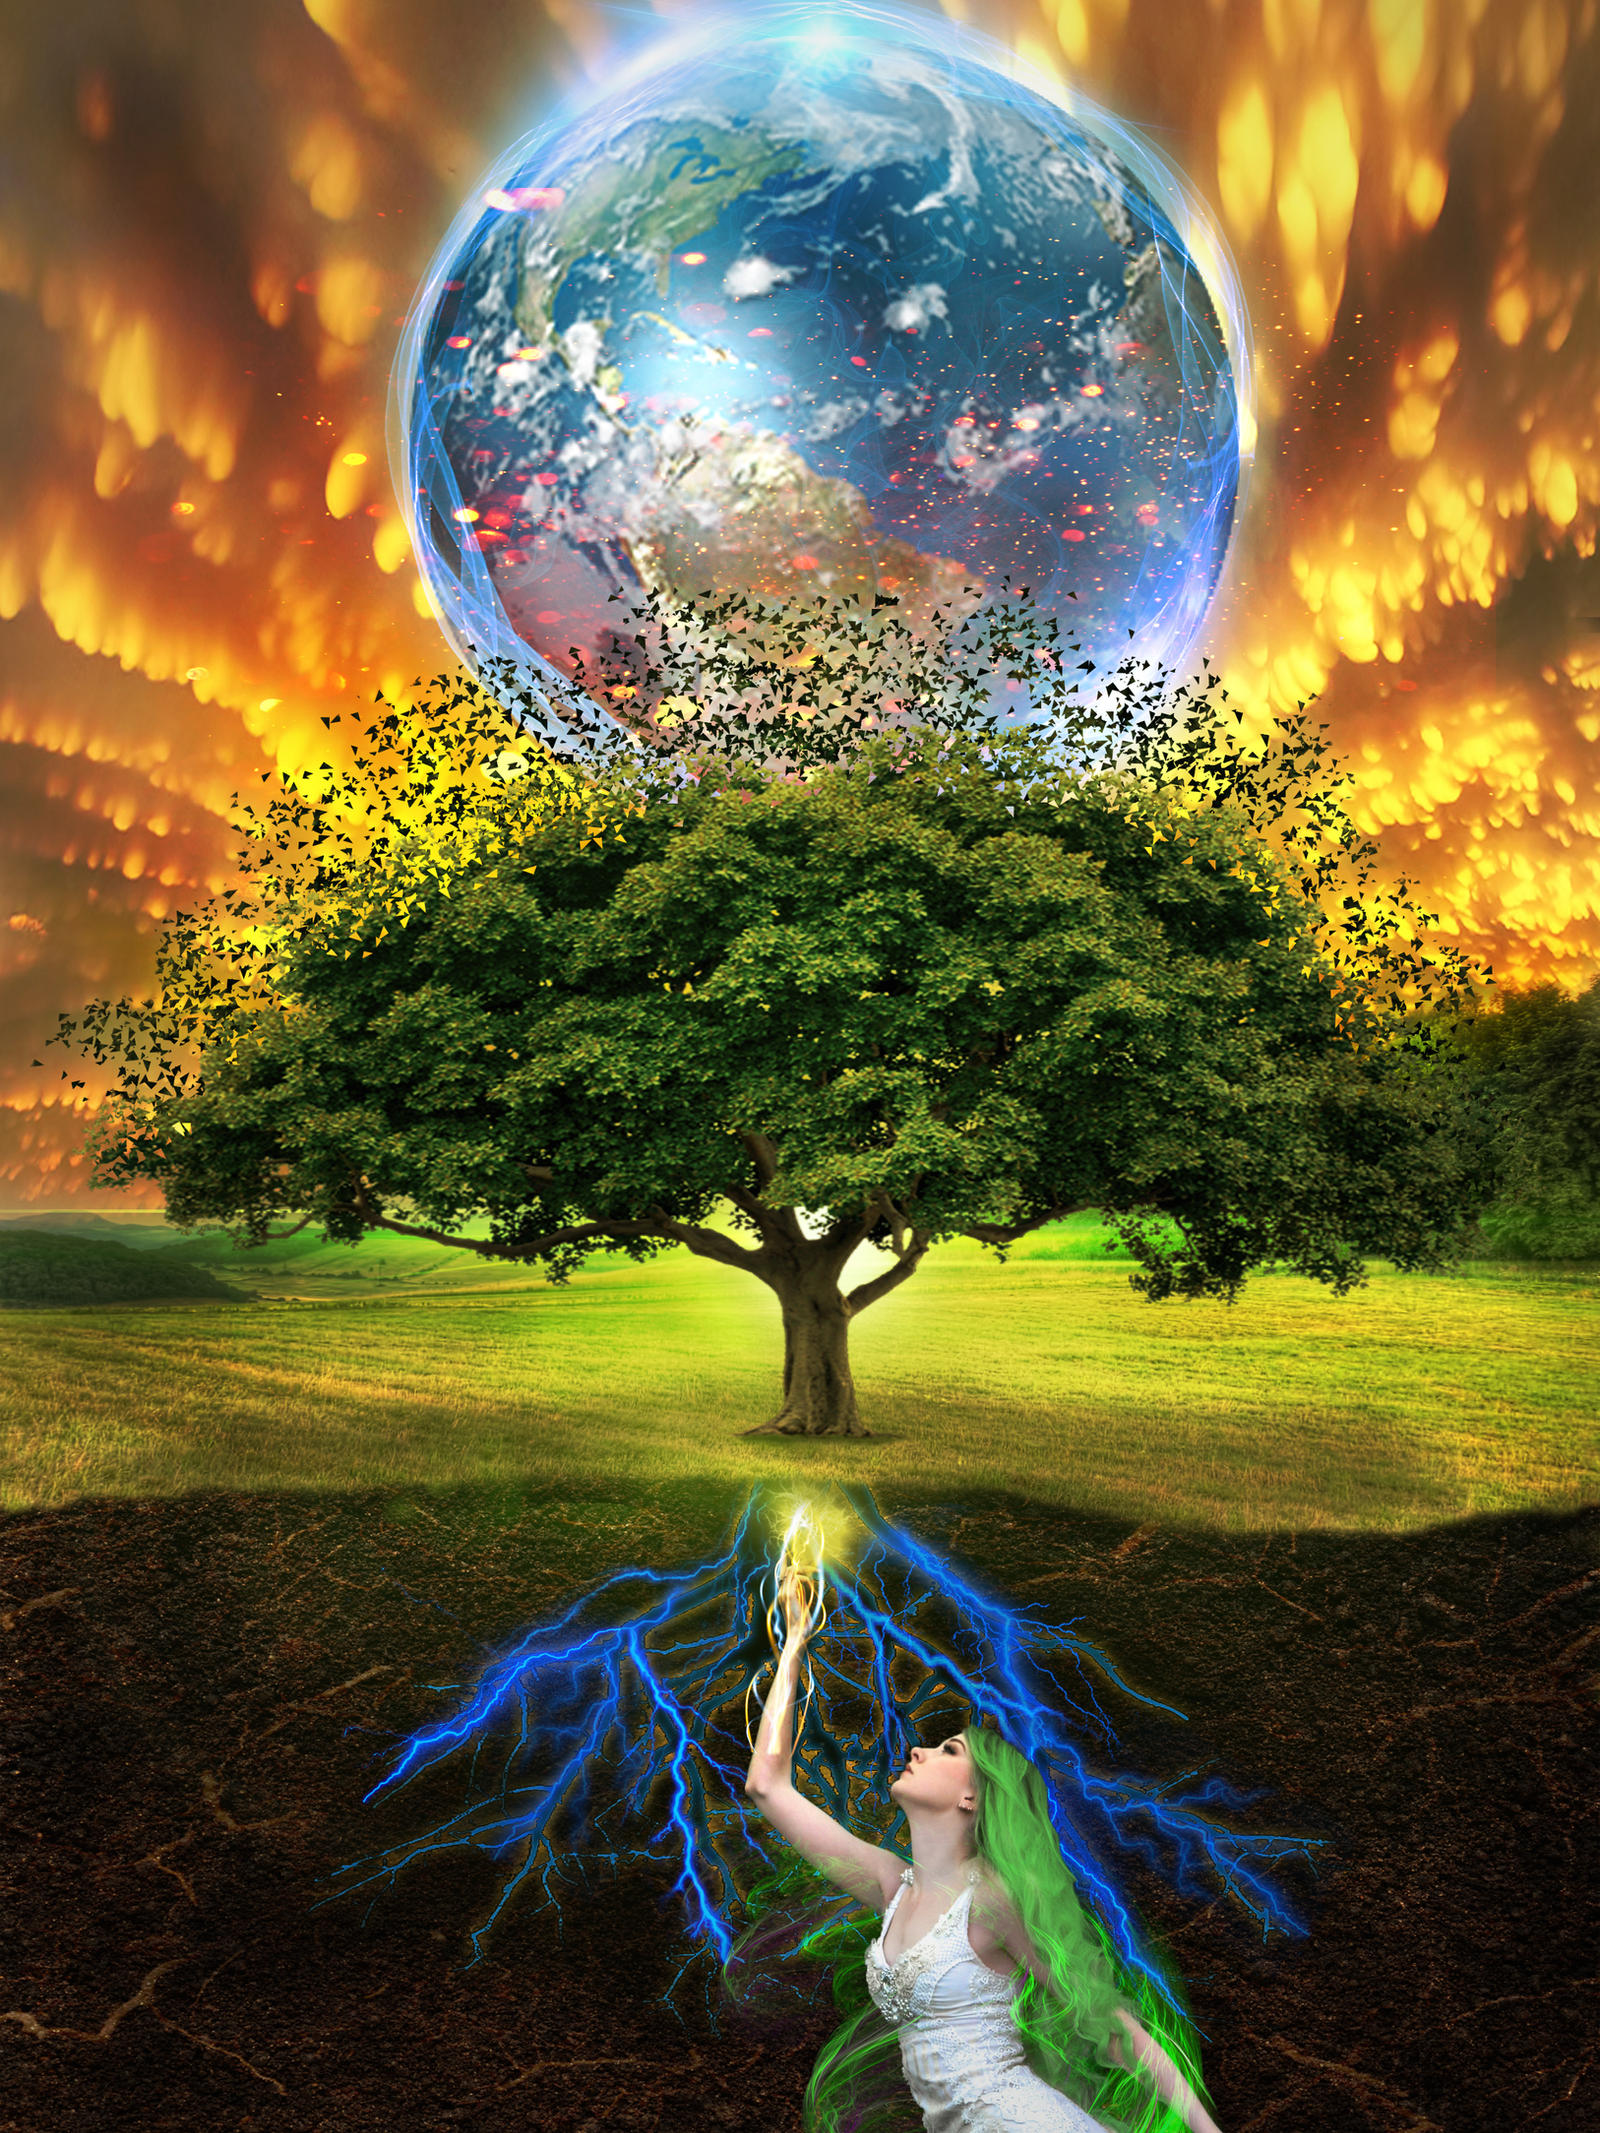 Gaia Tree of Life by AtsaL78 on DeviantArt